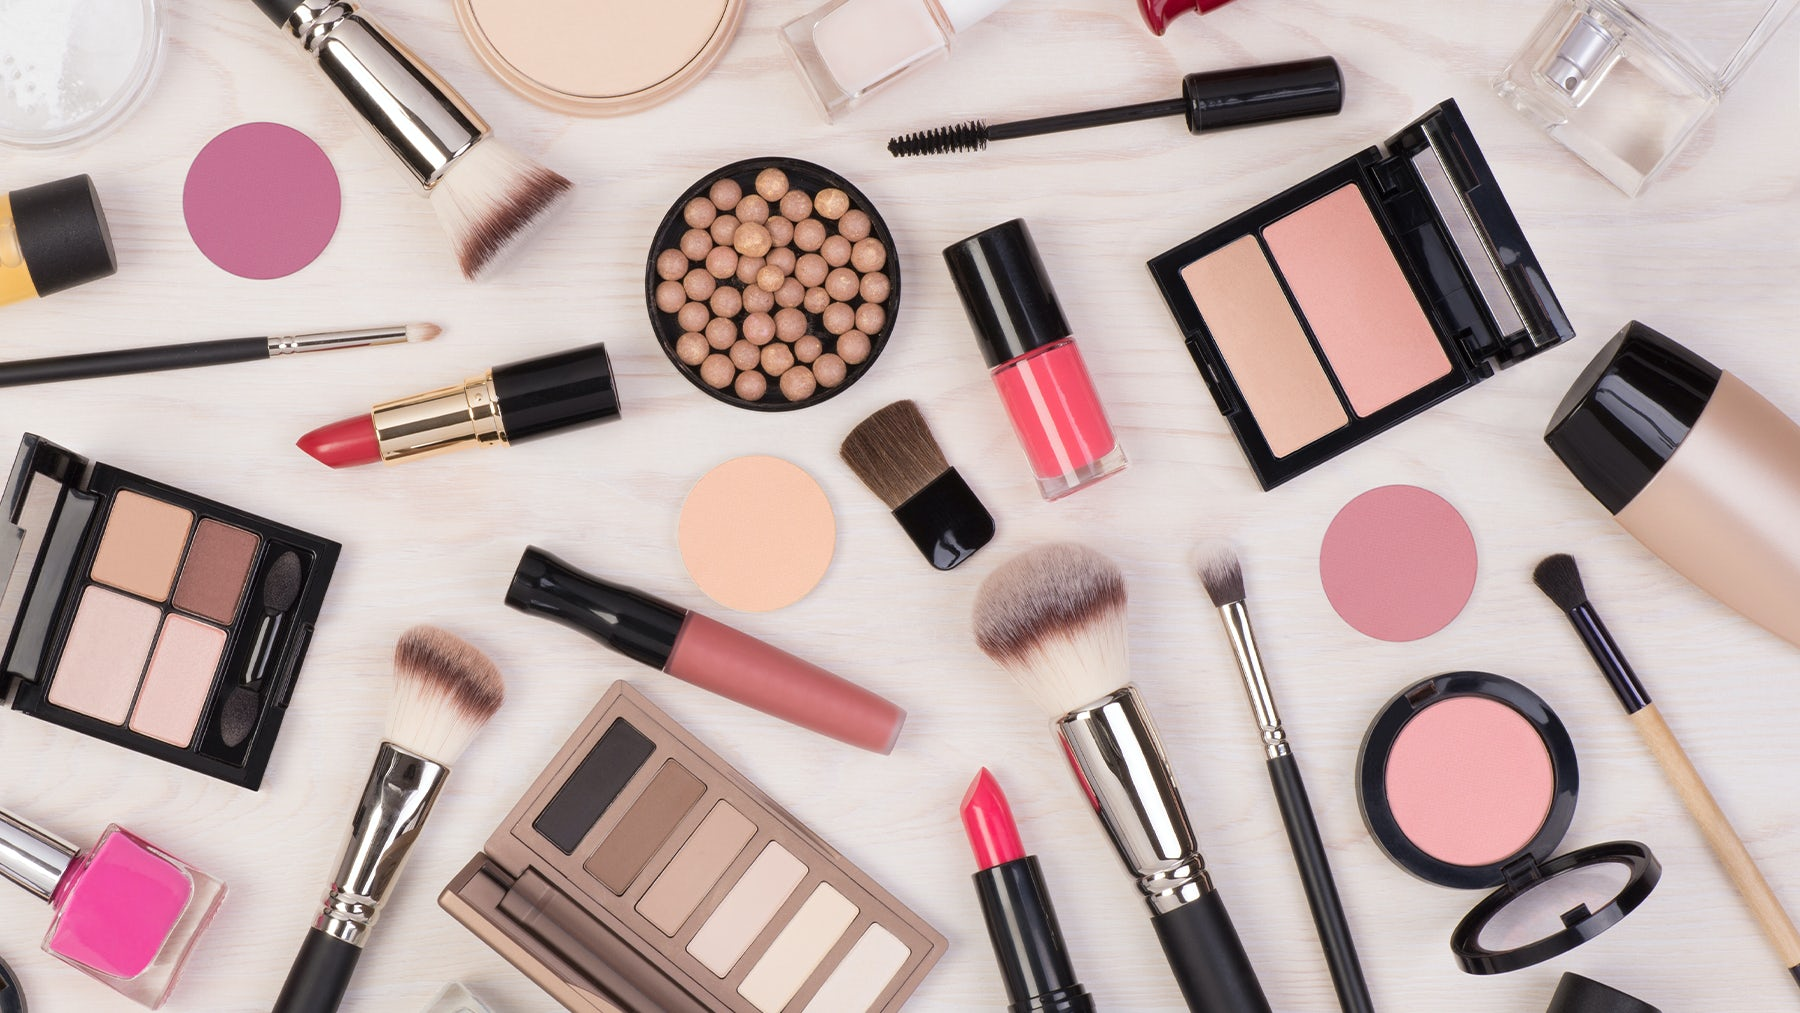 Are There Are Too Many Beauty Brands?